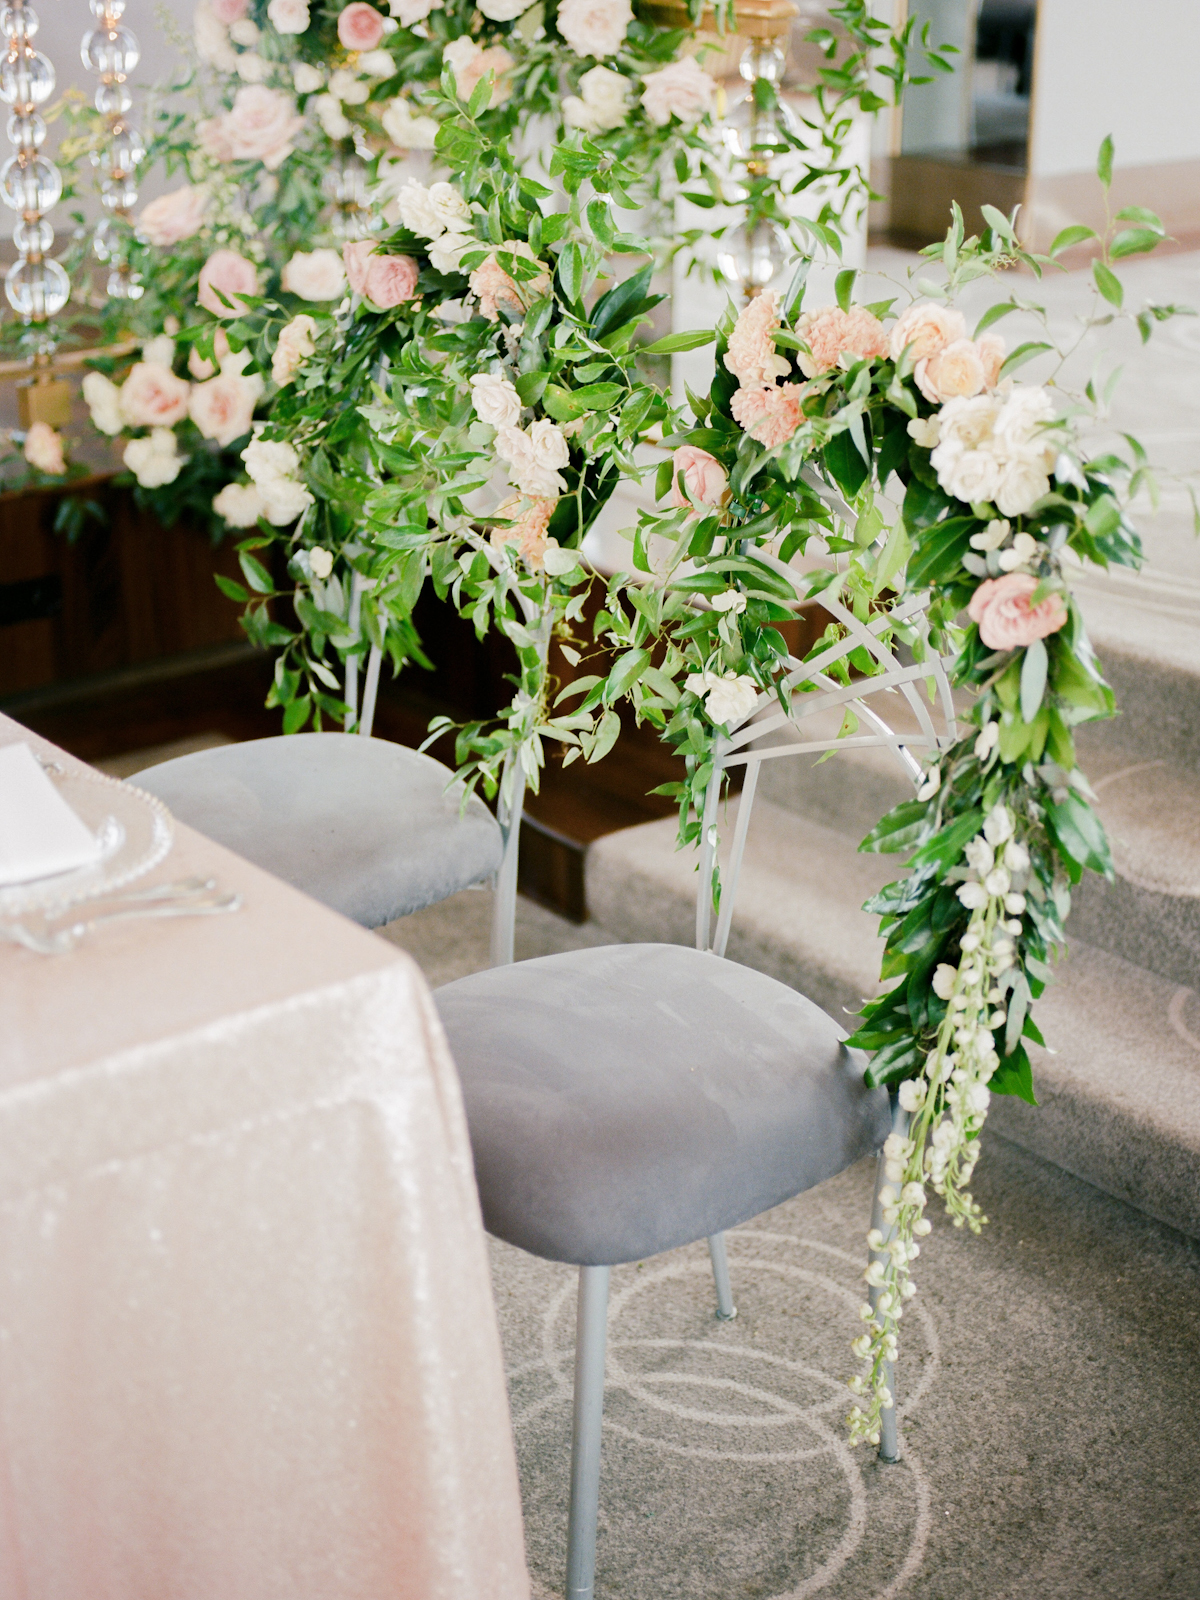 Chairs with floral garlands at Rainbow Room wedding